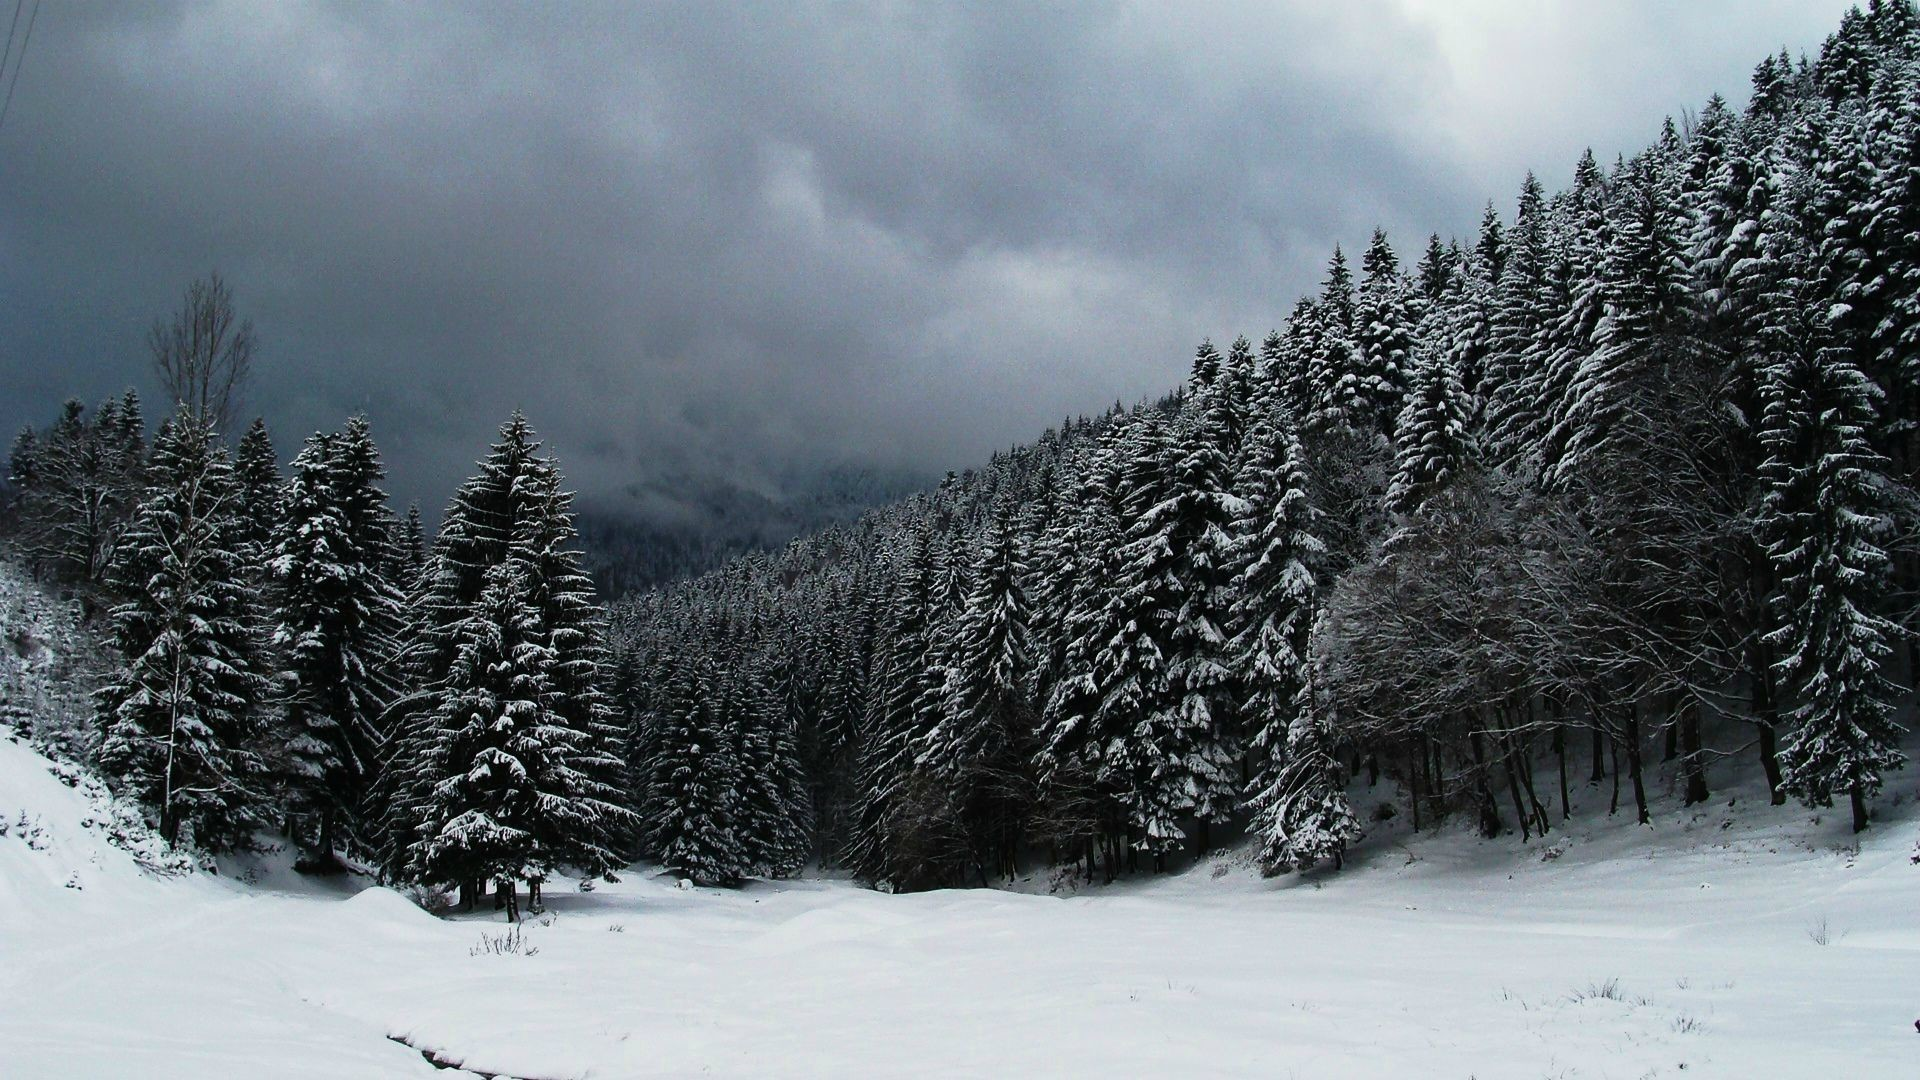 1920x1080 Clouds over snowy forest wallpaper #19361